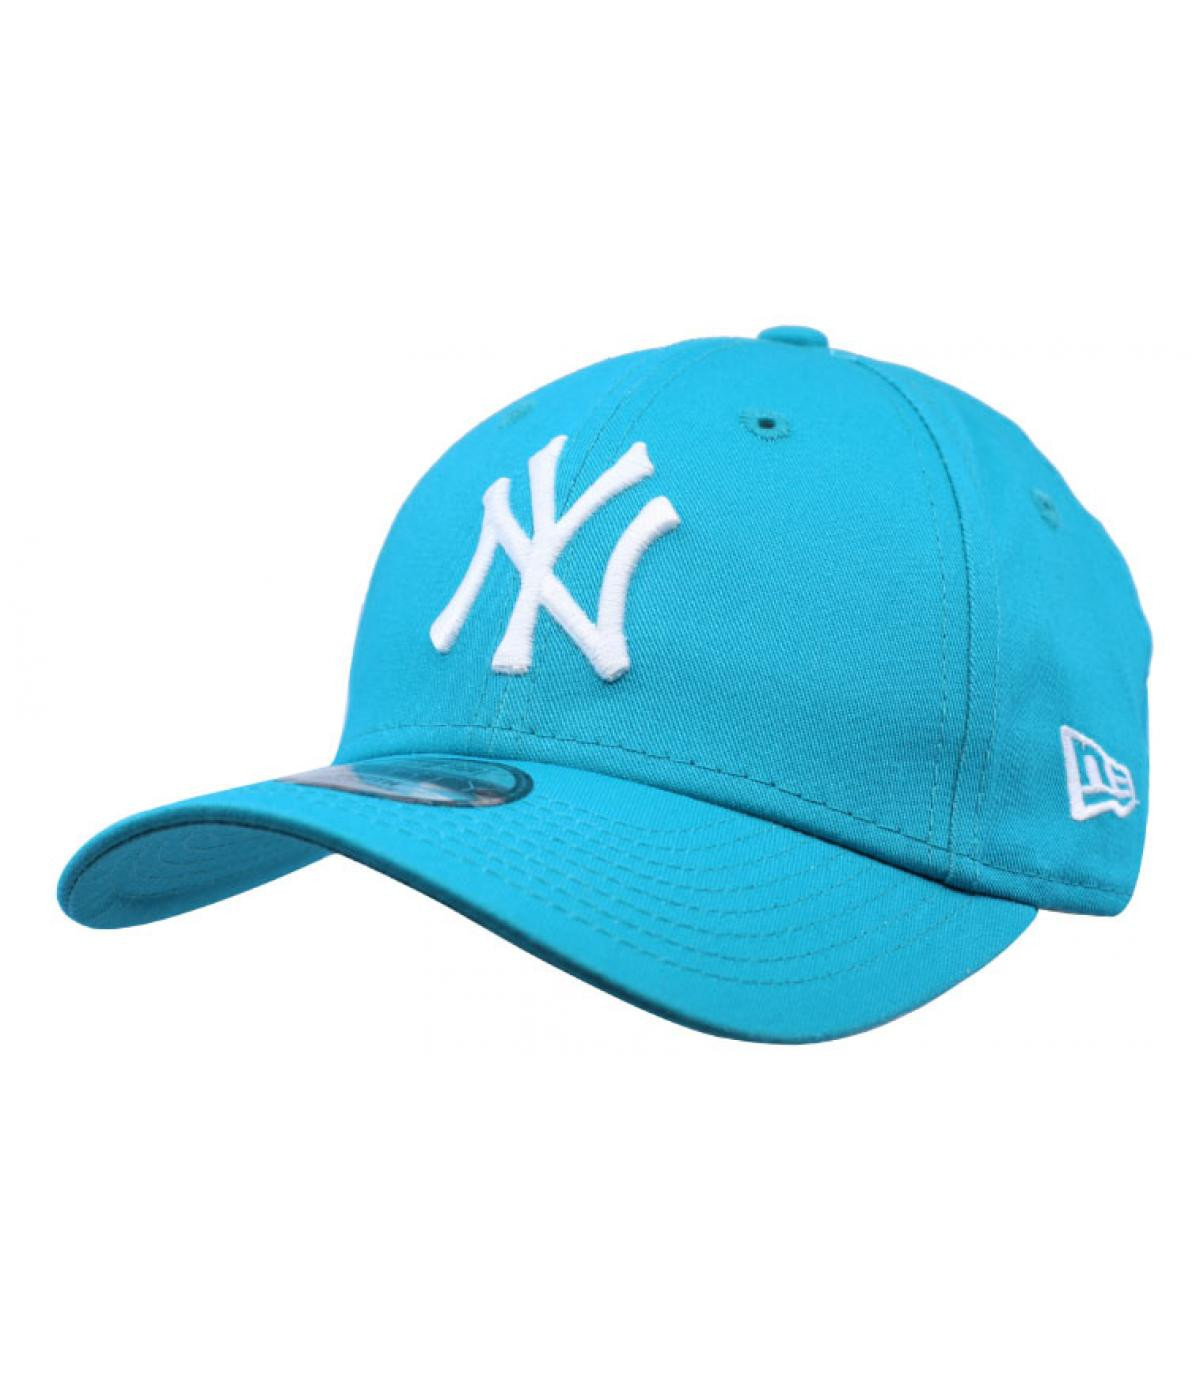 Details Kids League Ess 9Forty NY teal - afbeeling 2